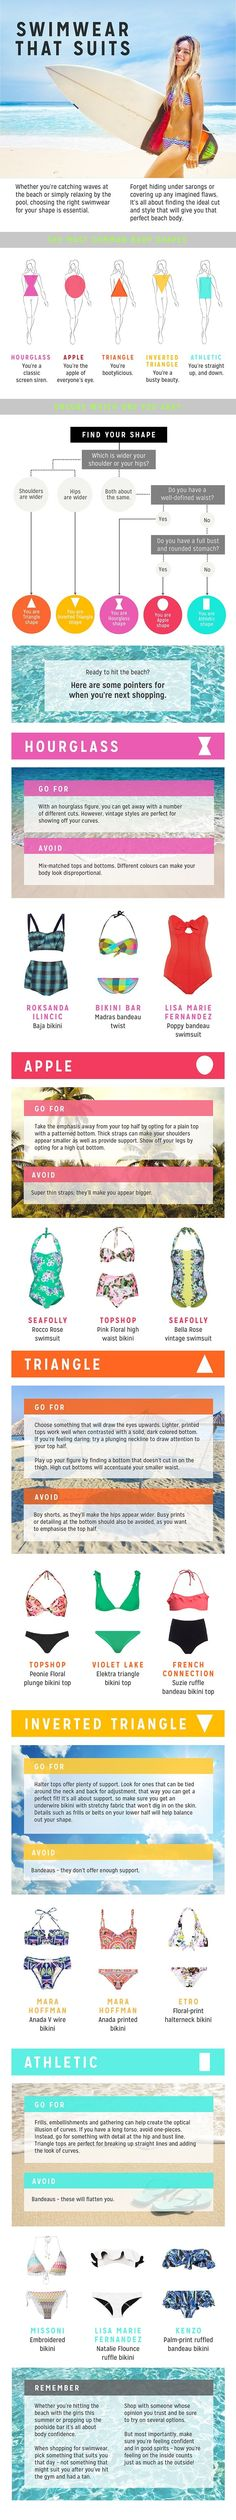 The Best Bathing Suits For All Body Types [Infographic]